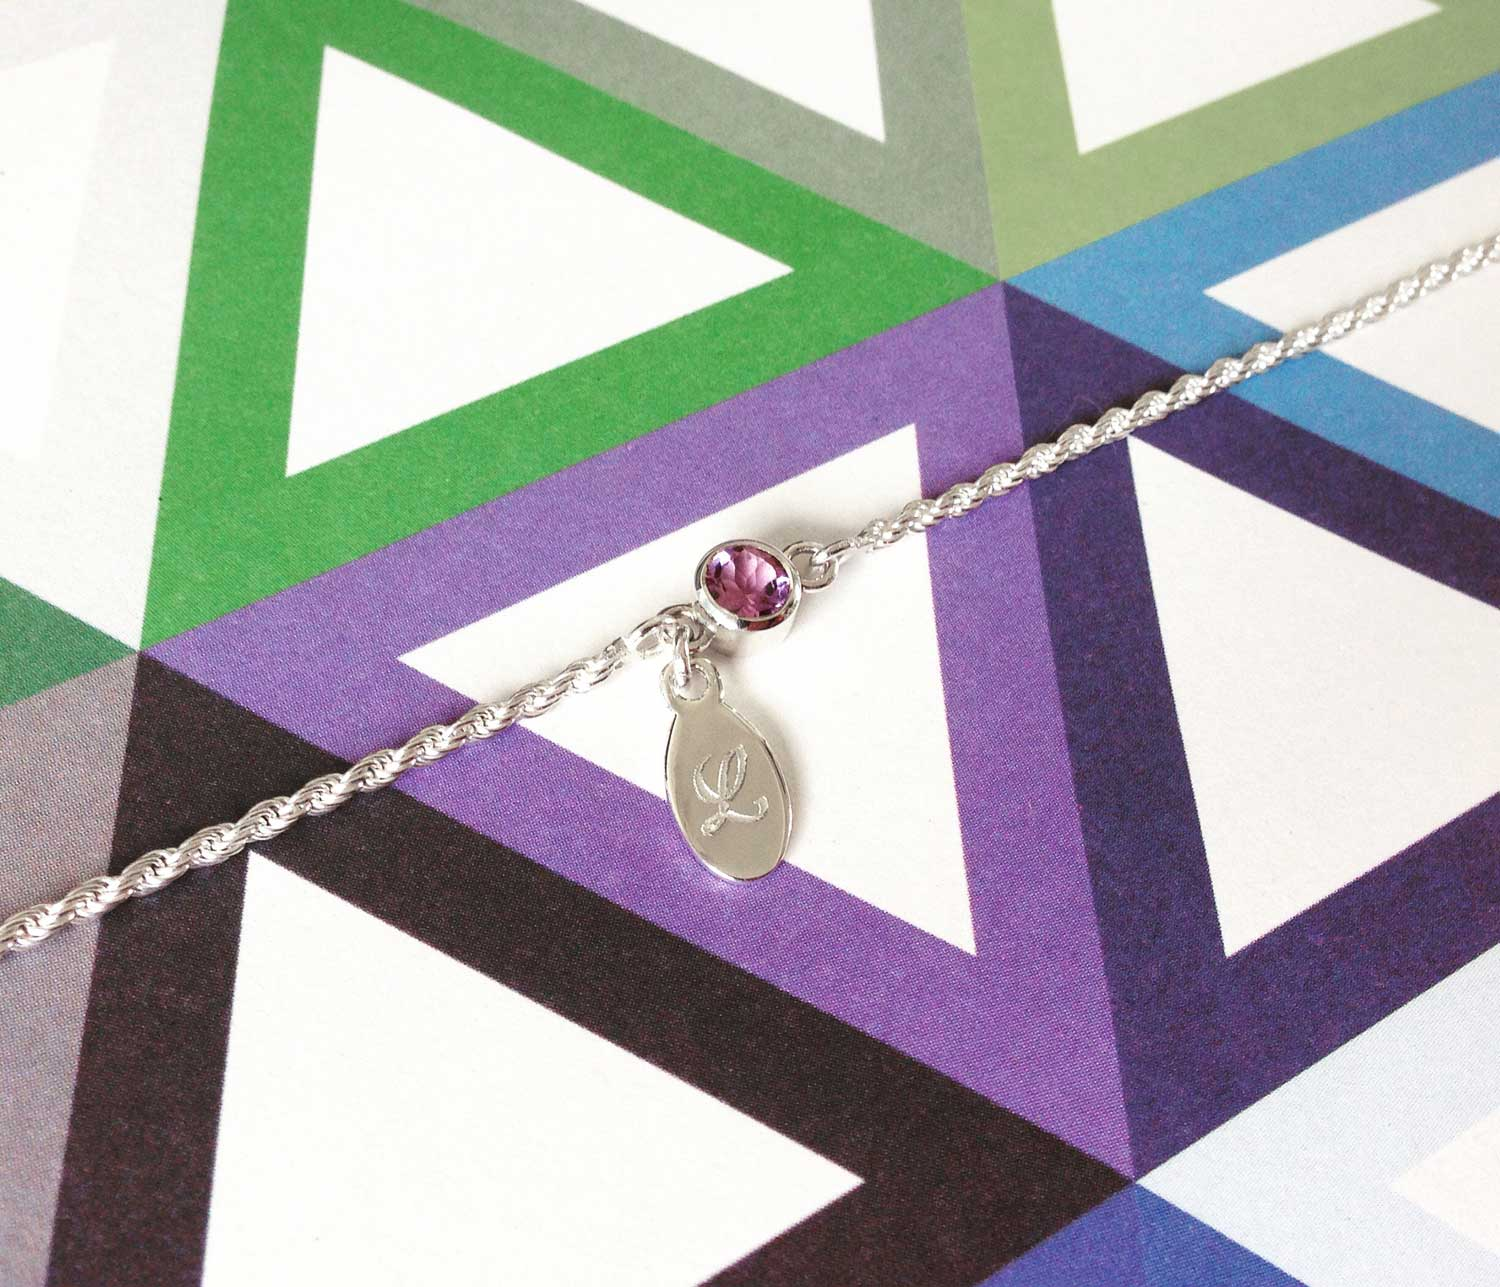 Amethyst bracelet with engraved tag